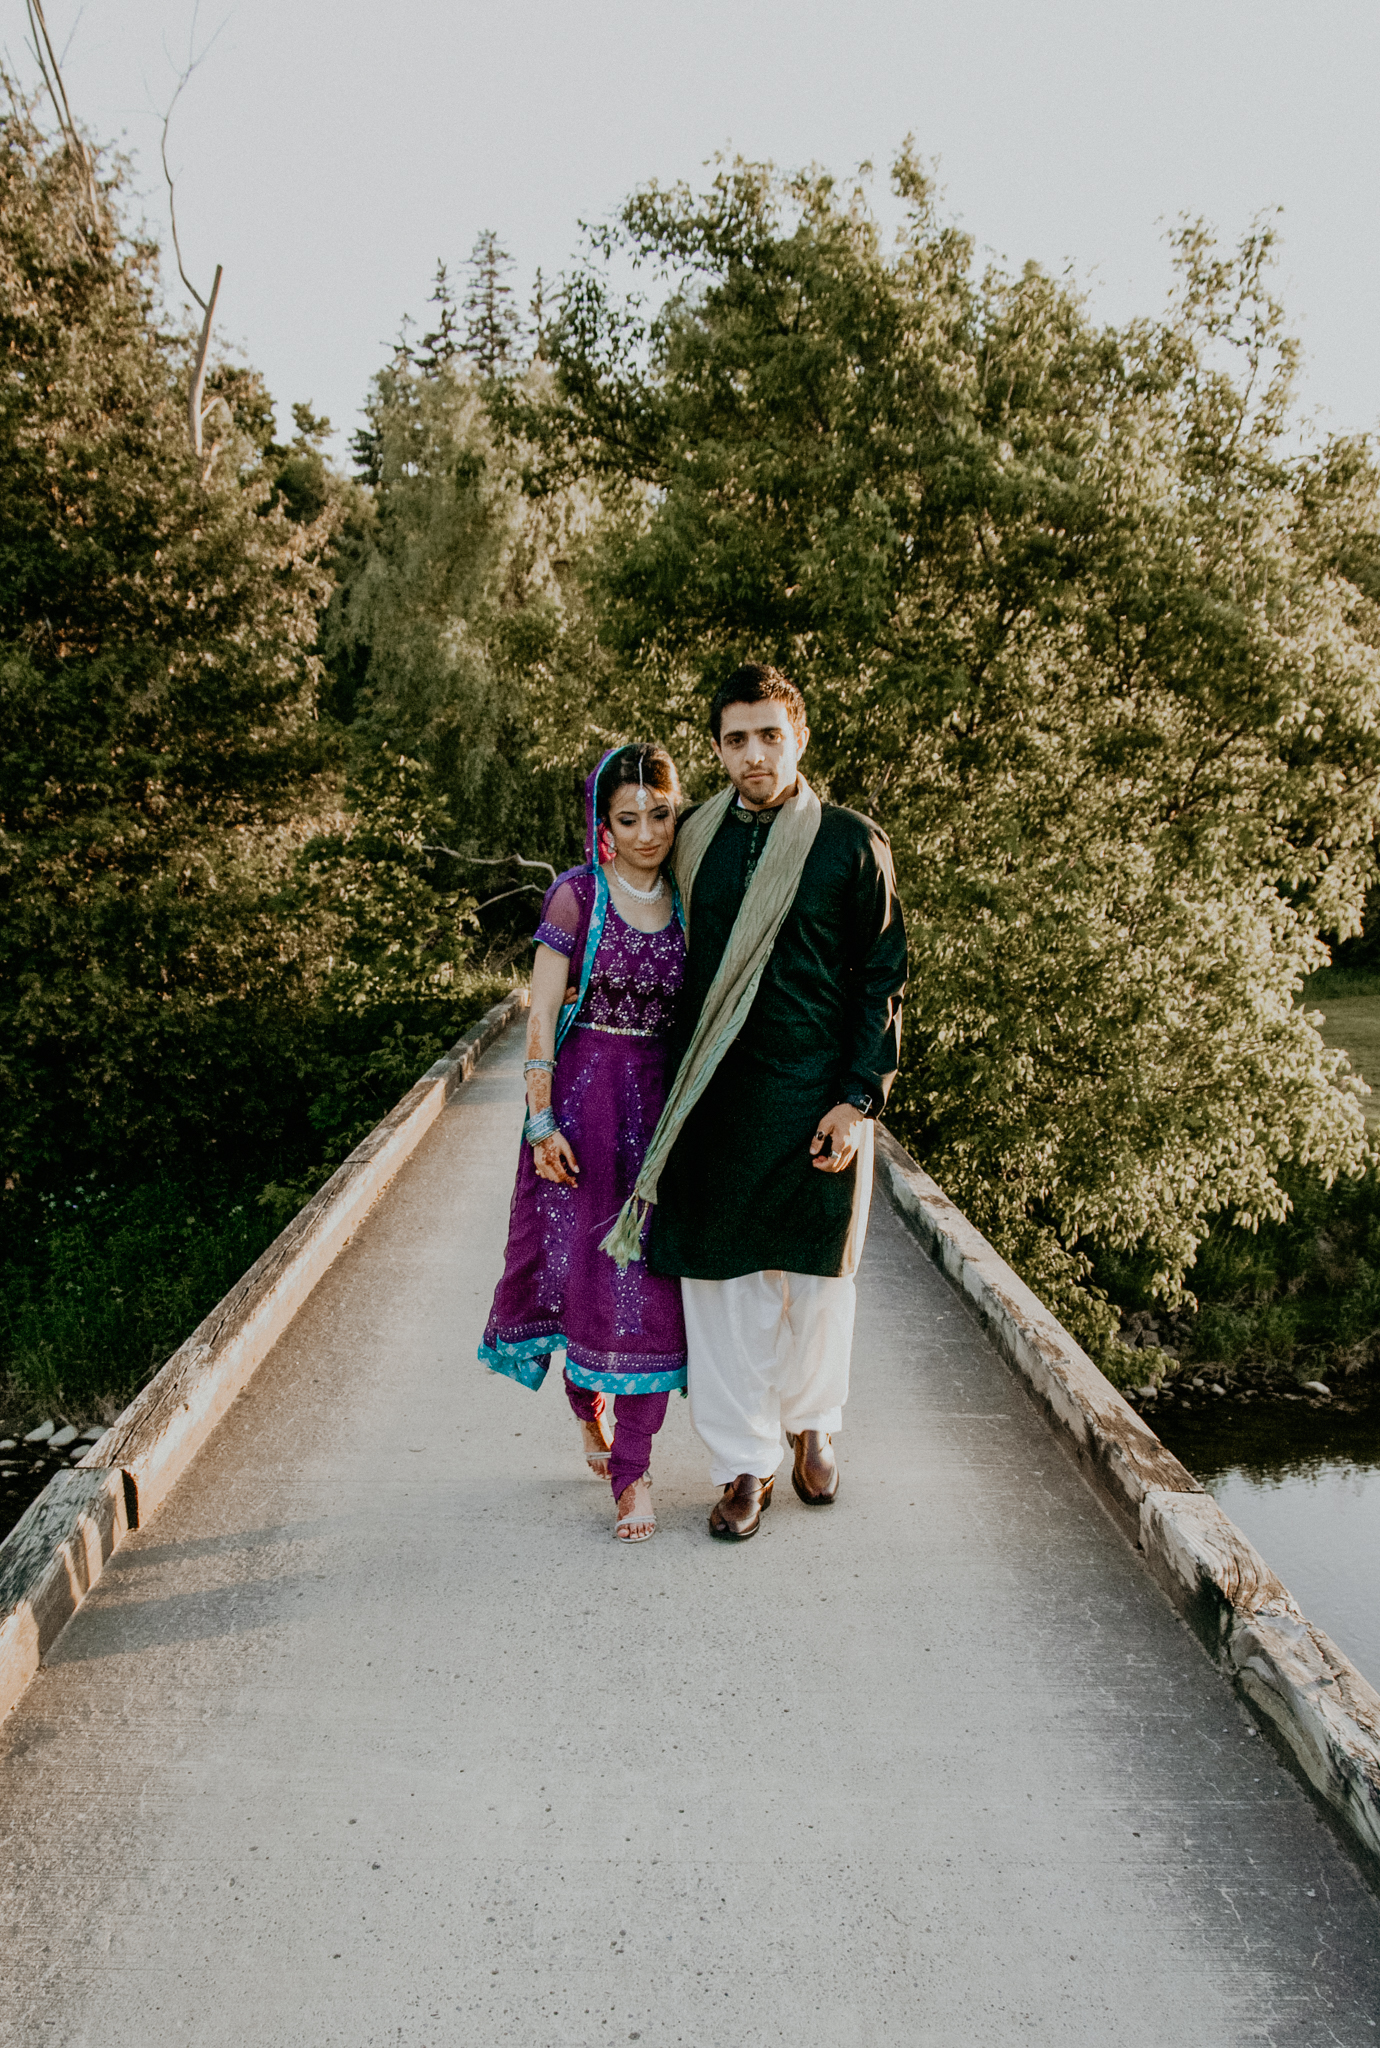 Bride and groom portrait at Indian wedding